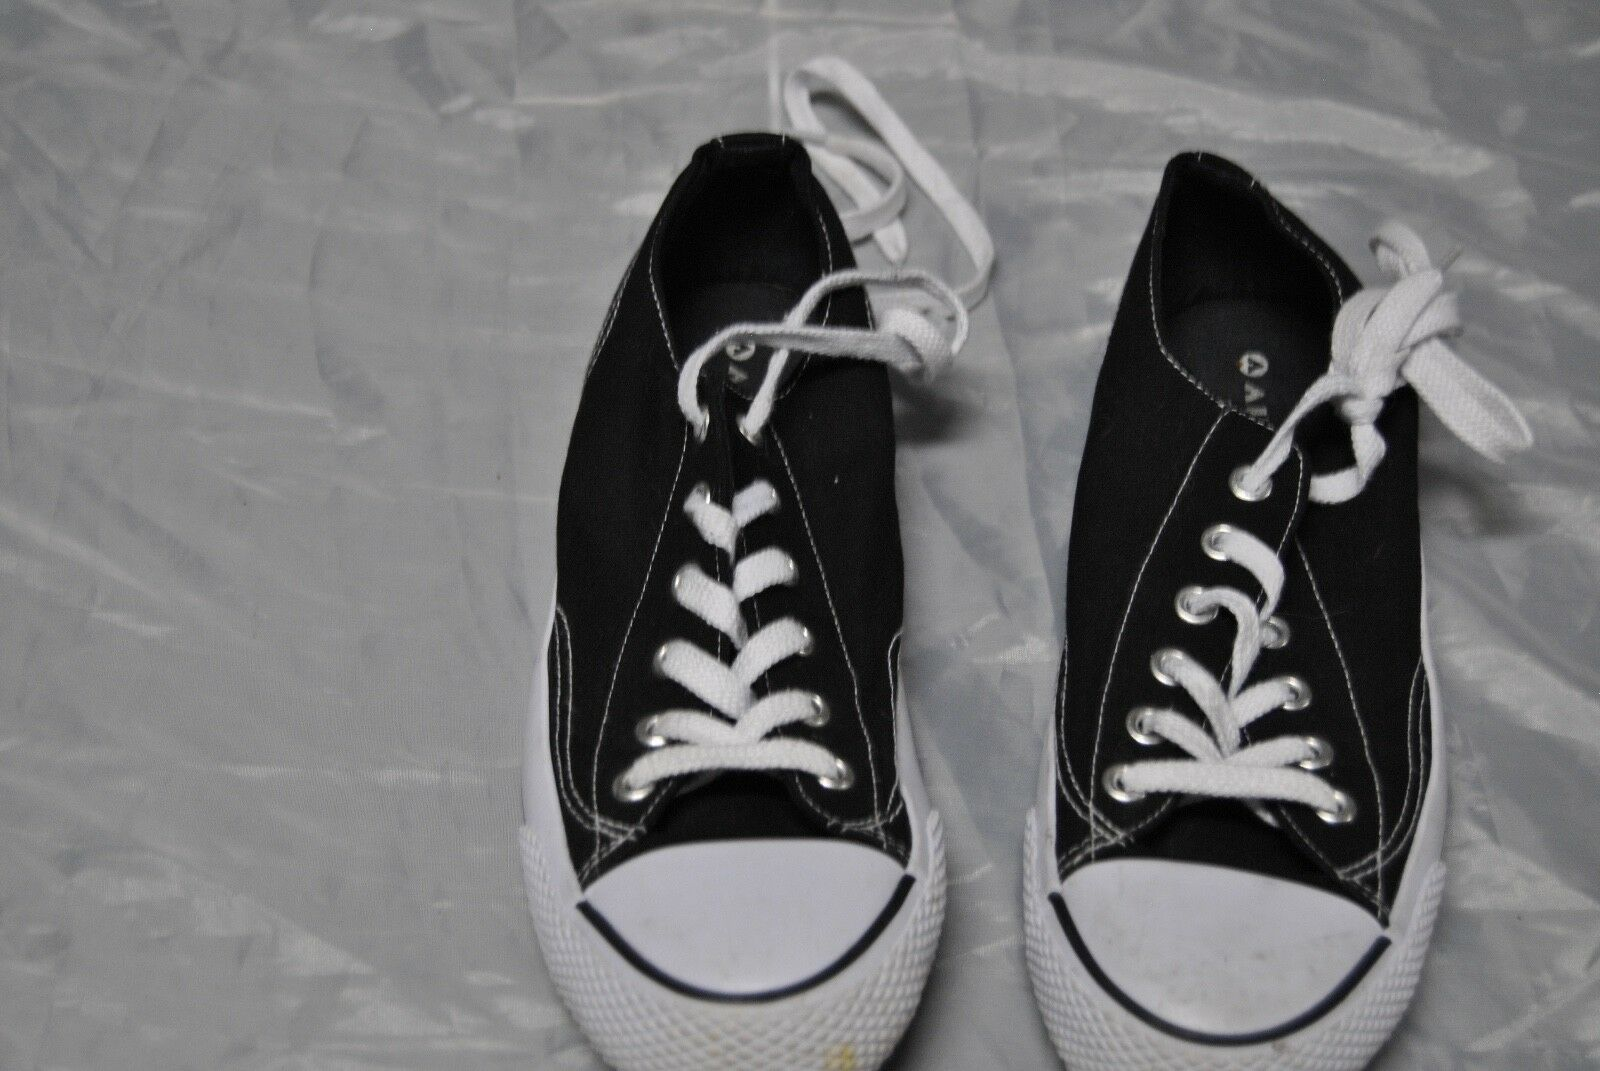 Men's Air Walk Tennis shoes Size 9 Black and White Lace up front